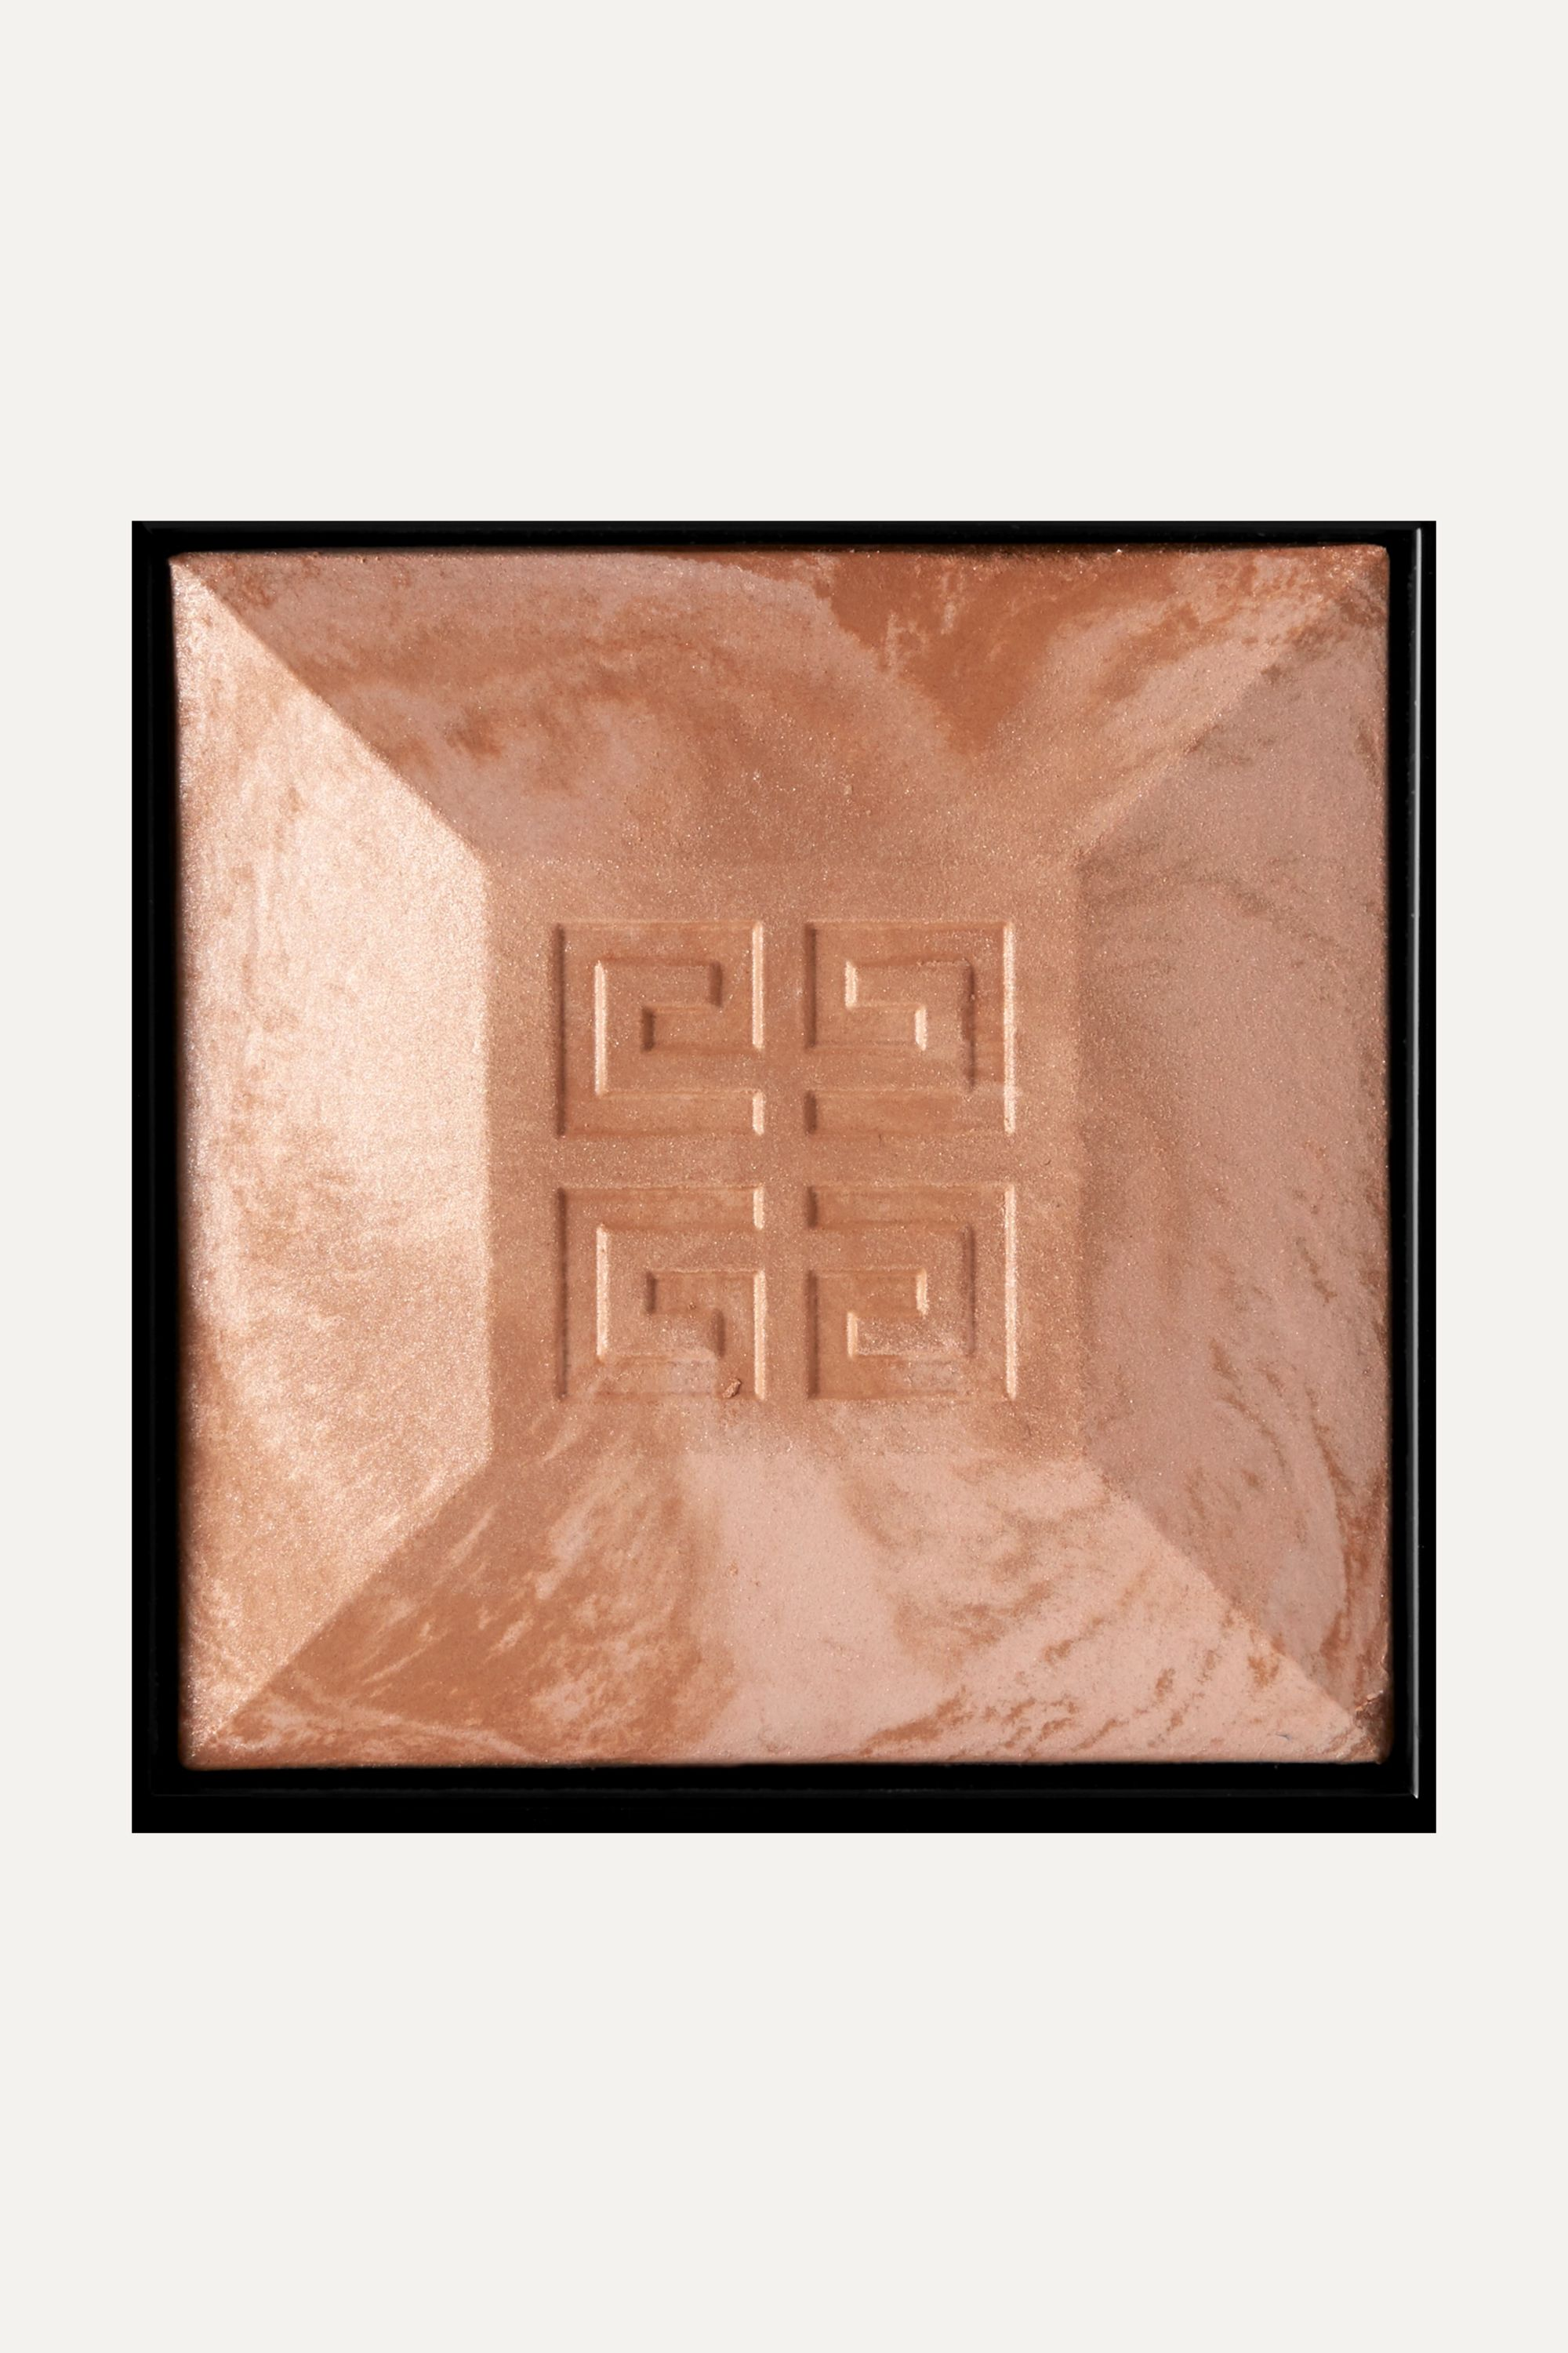 Givenchy Beauty Healthy Glow Powder - 2.5 Marbled